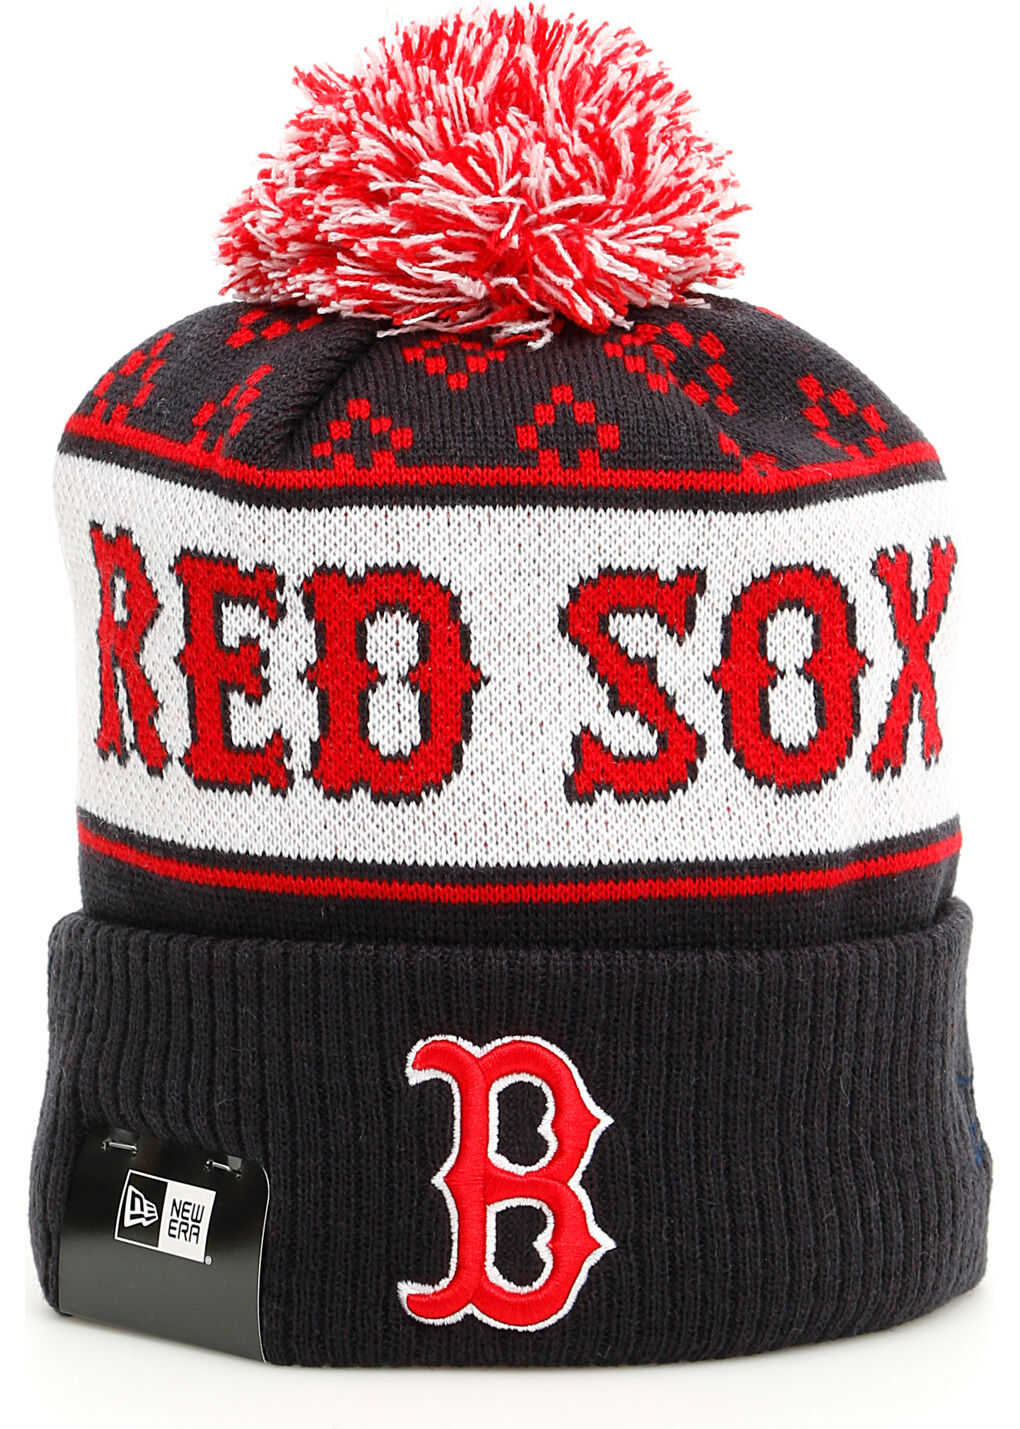 Red Sox Pom Pon Hat thumbnail